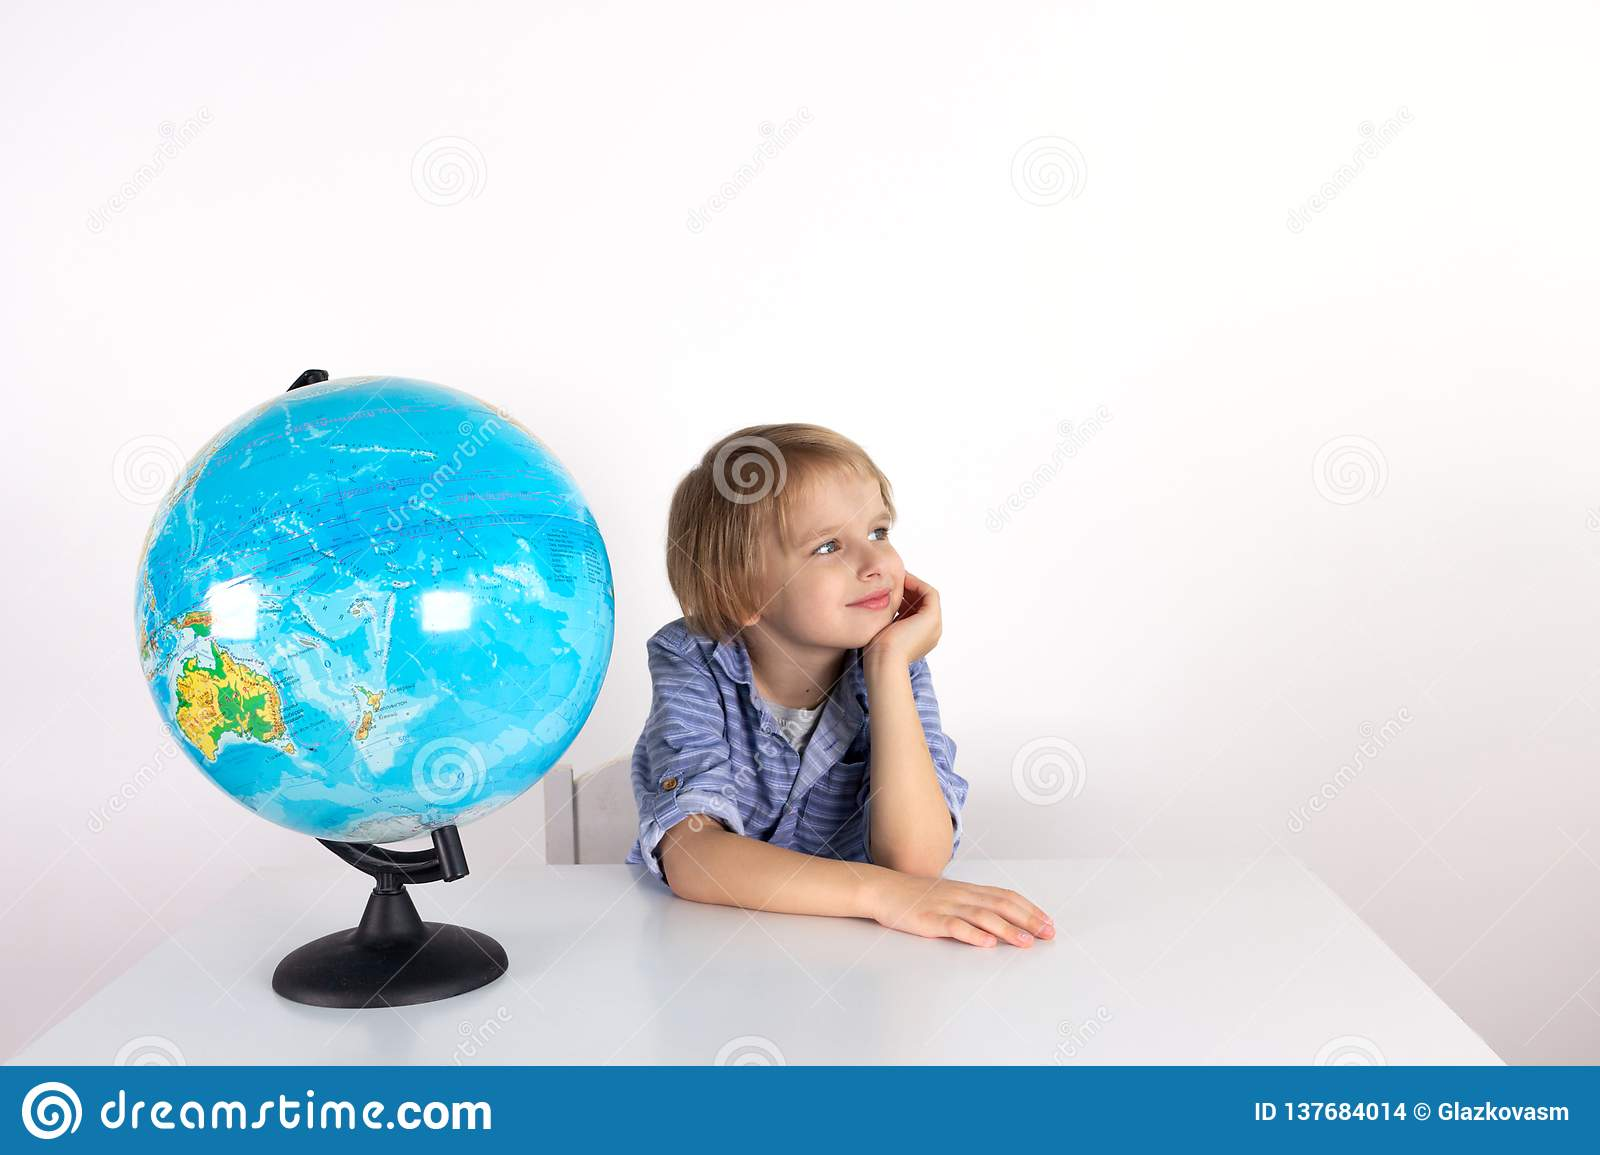 Toddler boy with a globe on the lesson of practical life on a white background, Montessori class, isolate.